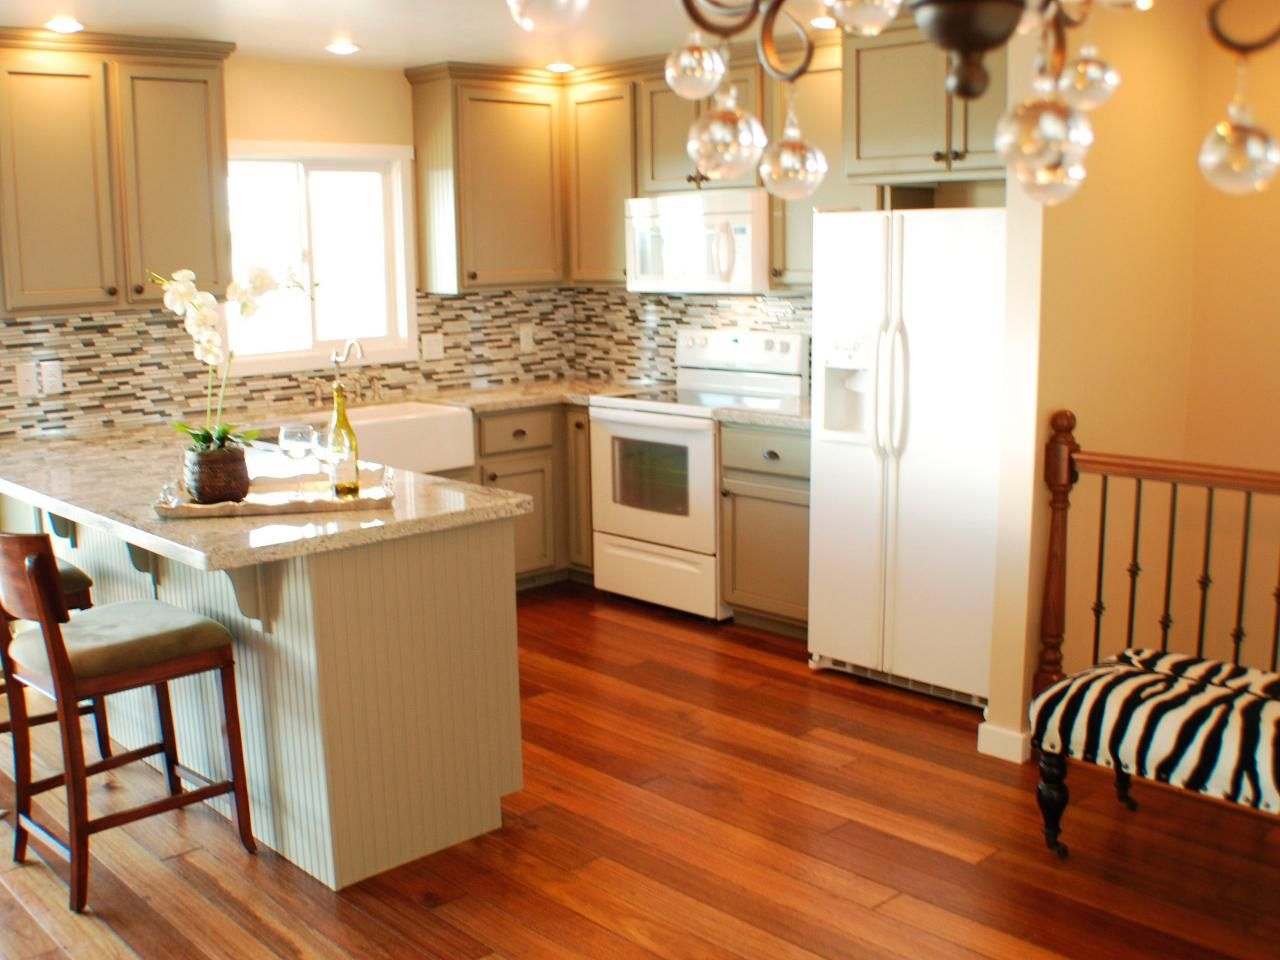 Kitchen Remodeling: Where to Splurge, Where to Save | Pinterest ...